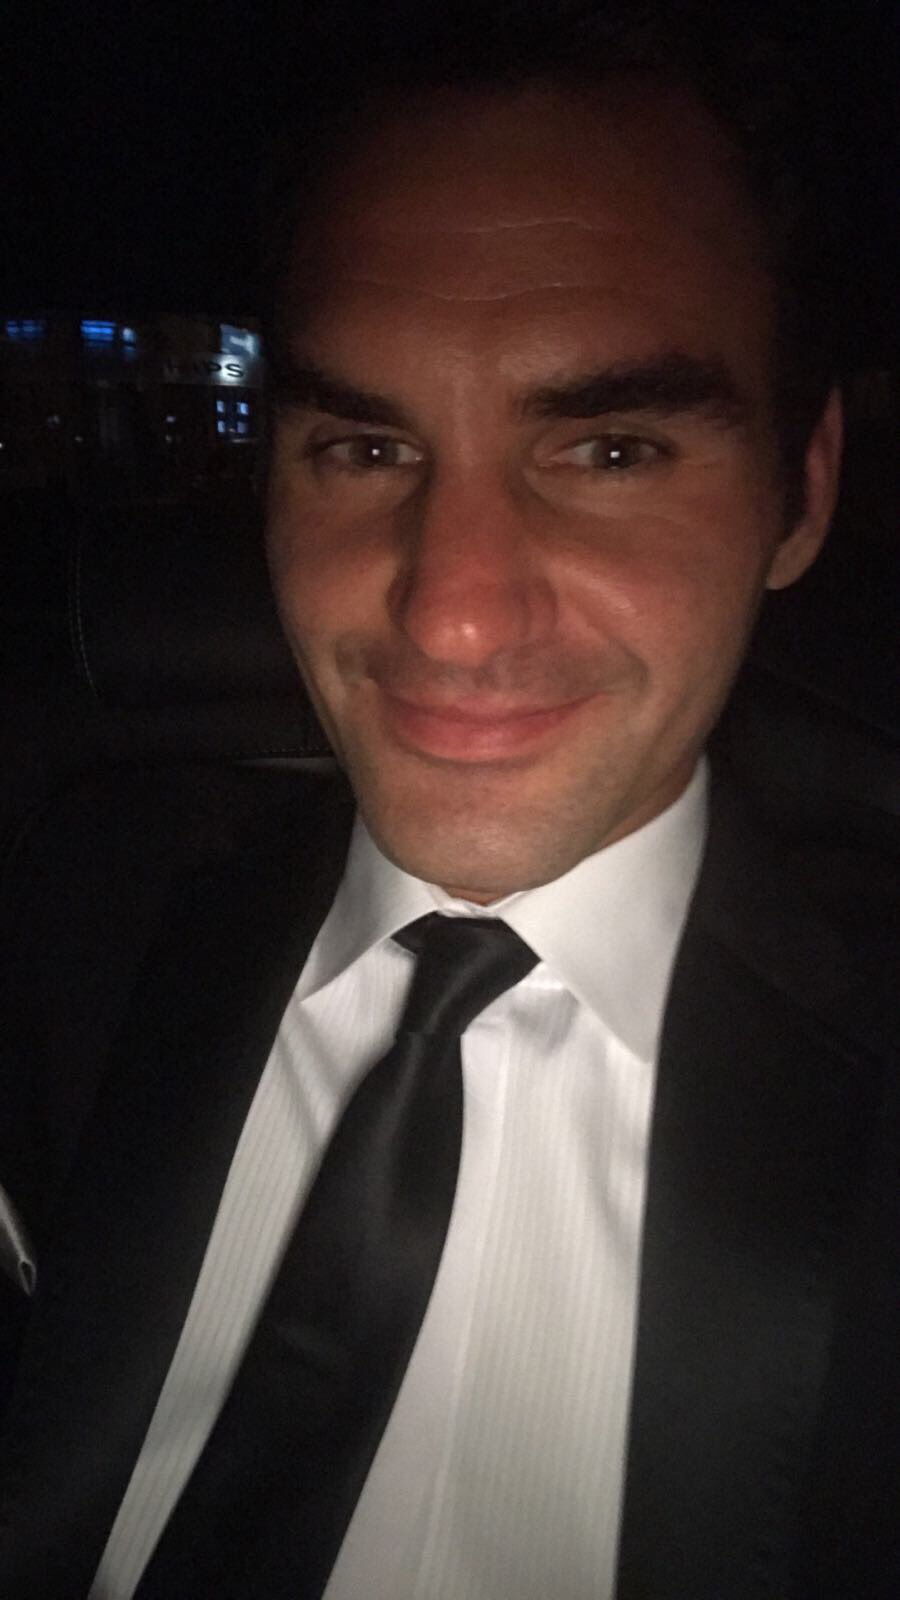 On my way to the @Wimbledon champions dinner �� https://t.co/J1CLMosSkH